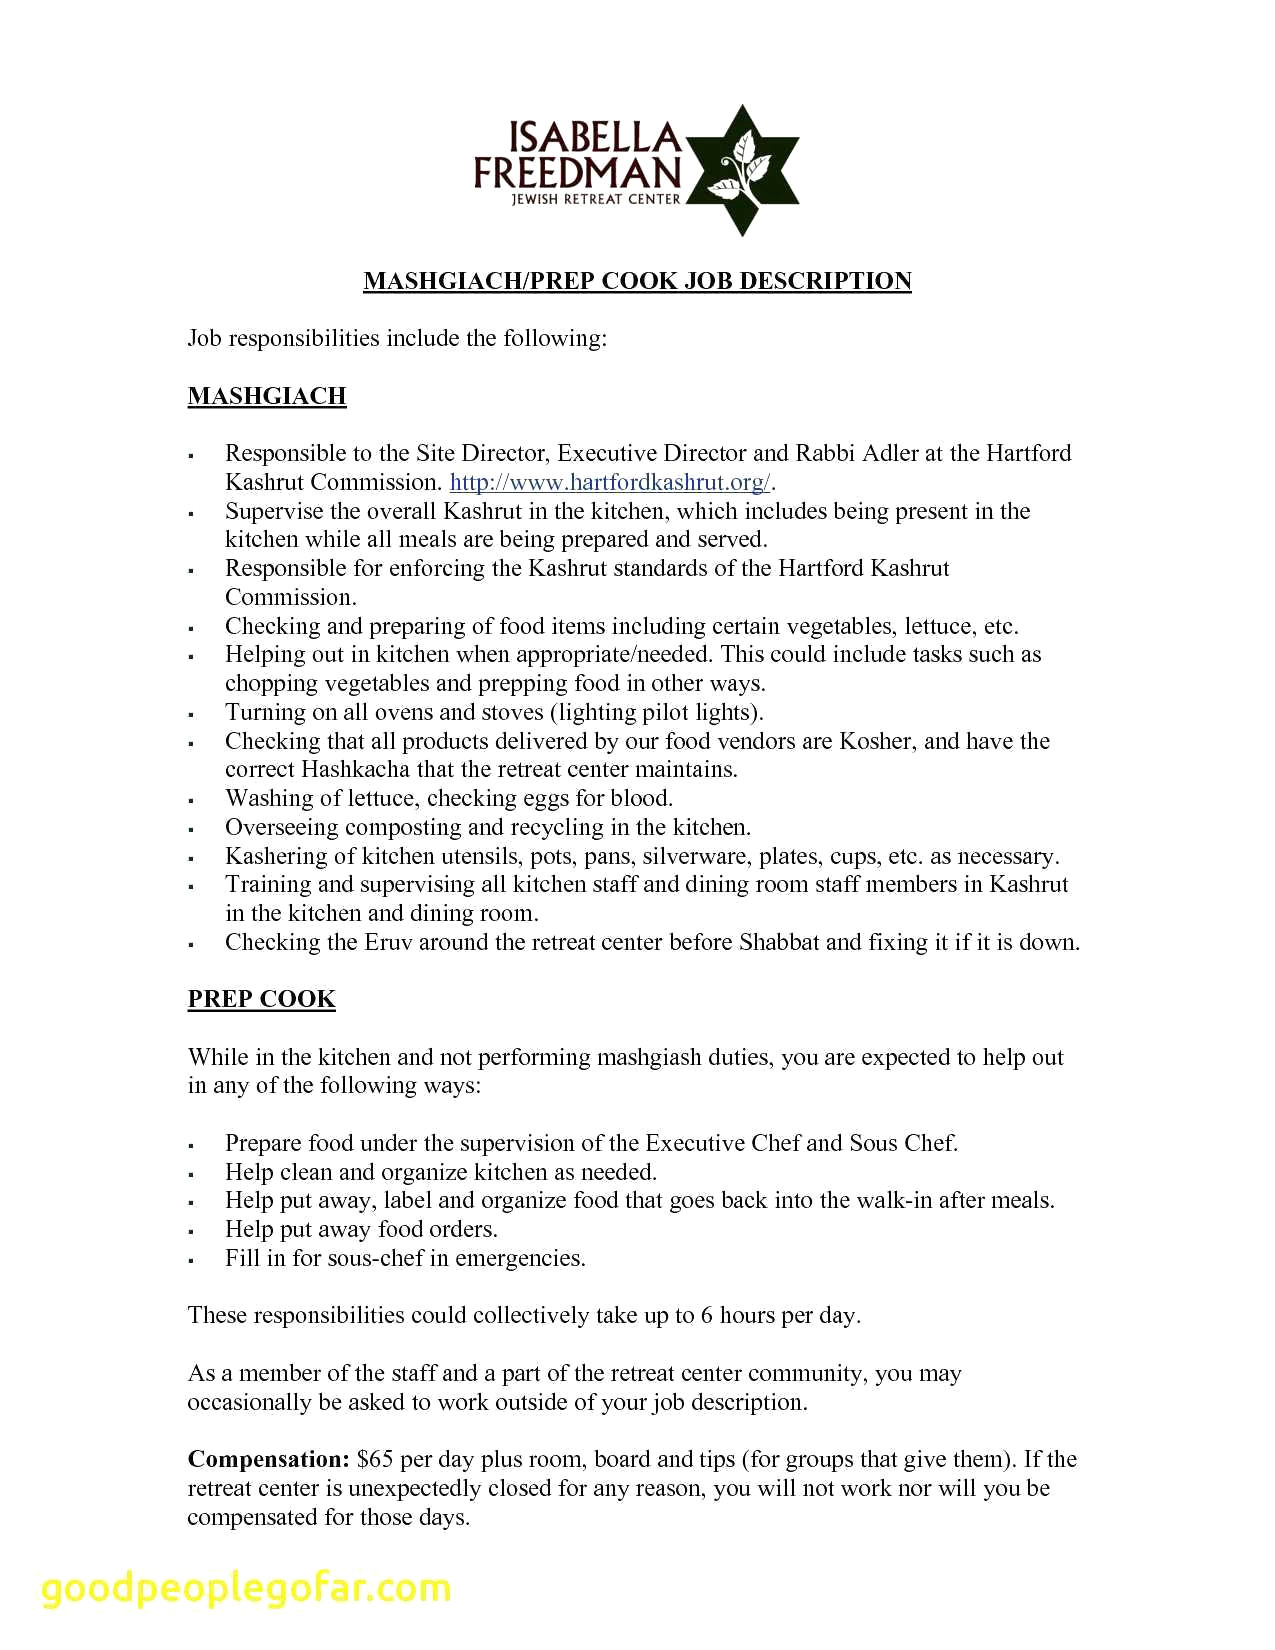 Outside Sales Rep Resume - 37 Inspirational Sales Representative Resume